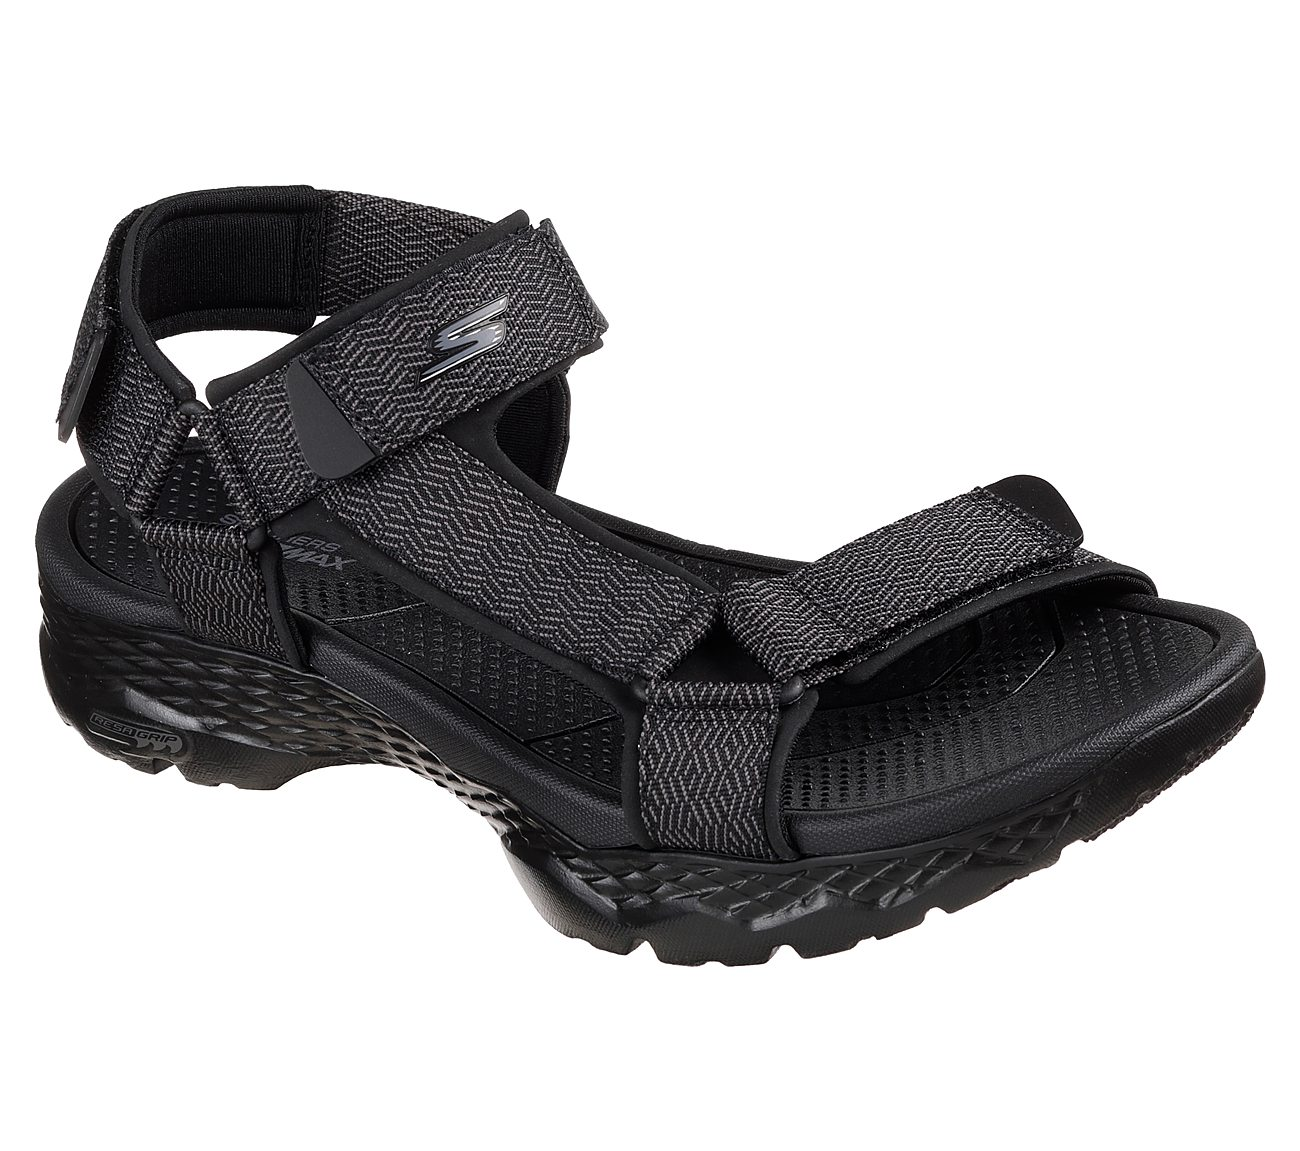 Skechers GOwalk Outdoors - Nature. $55.00. Hover to zoom. Black/Gray